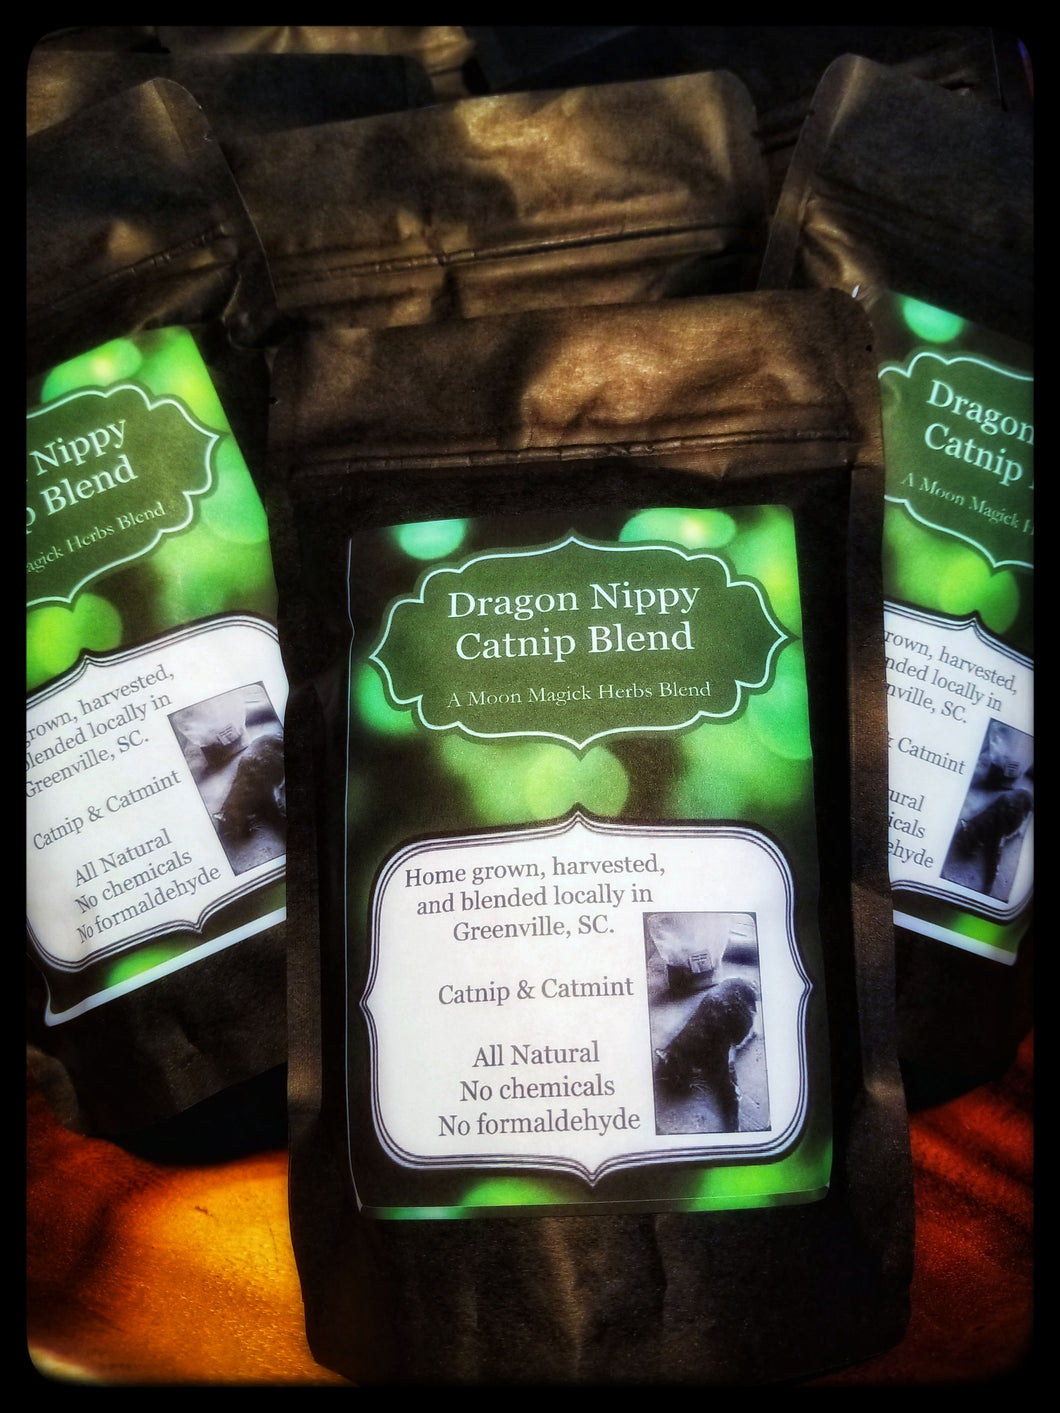 Dragon Nippy Catnip Blend || HomeGrown || Hand Blended || All Natural || No Chemicals || Kitty Tested